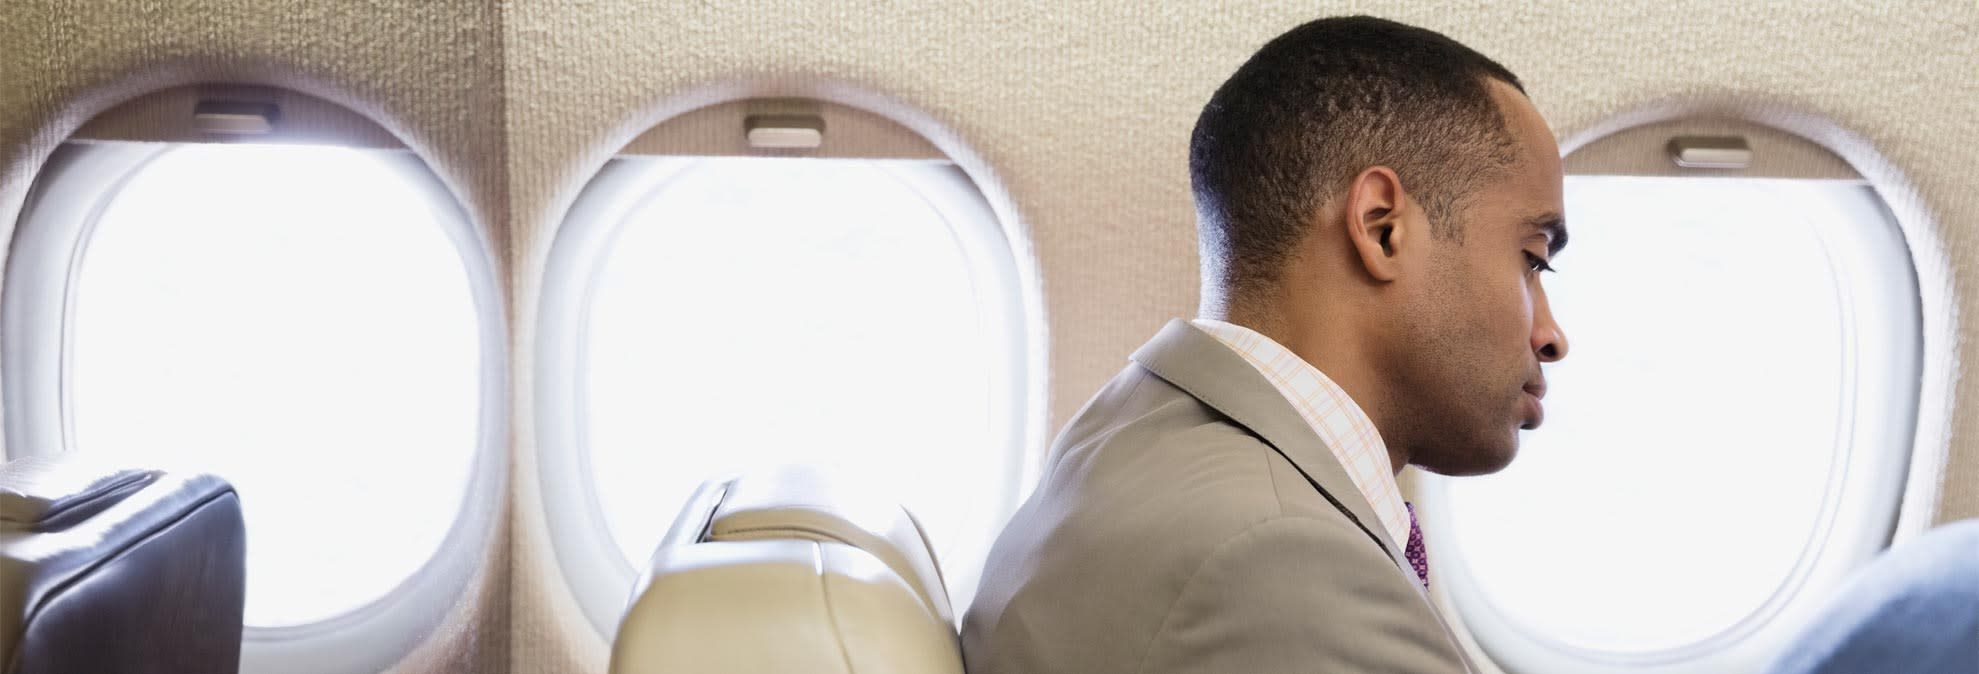 What to Do If You Feel You've Been Mistreated by an Airline